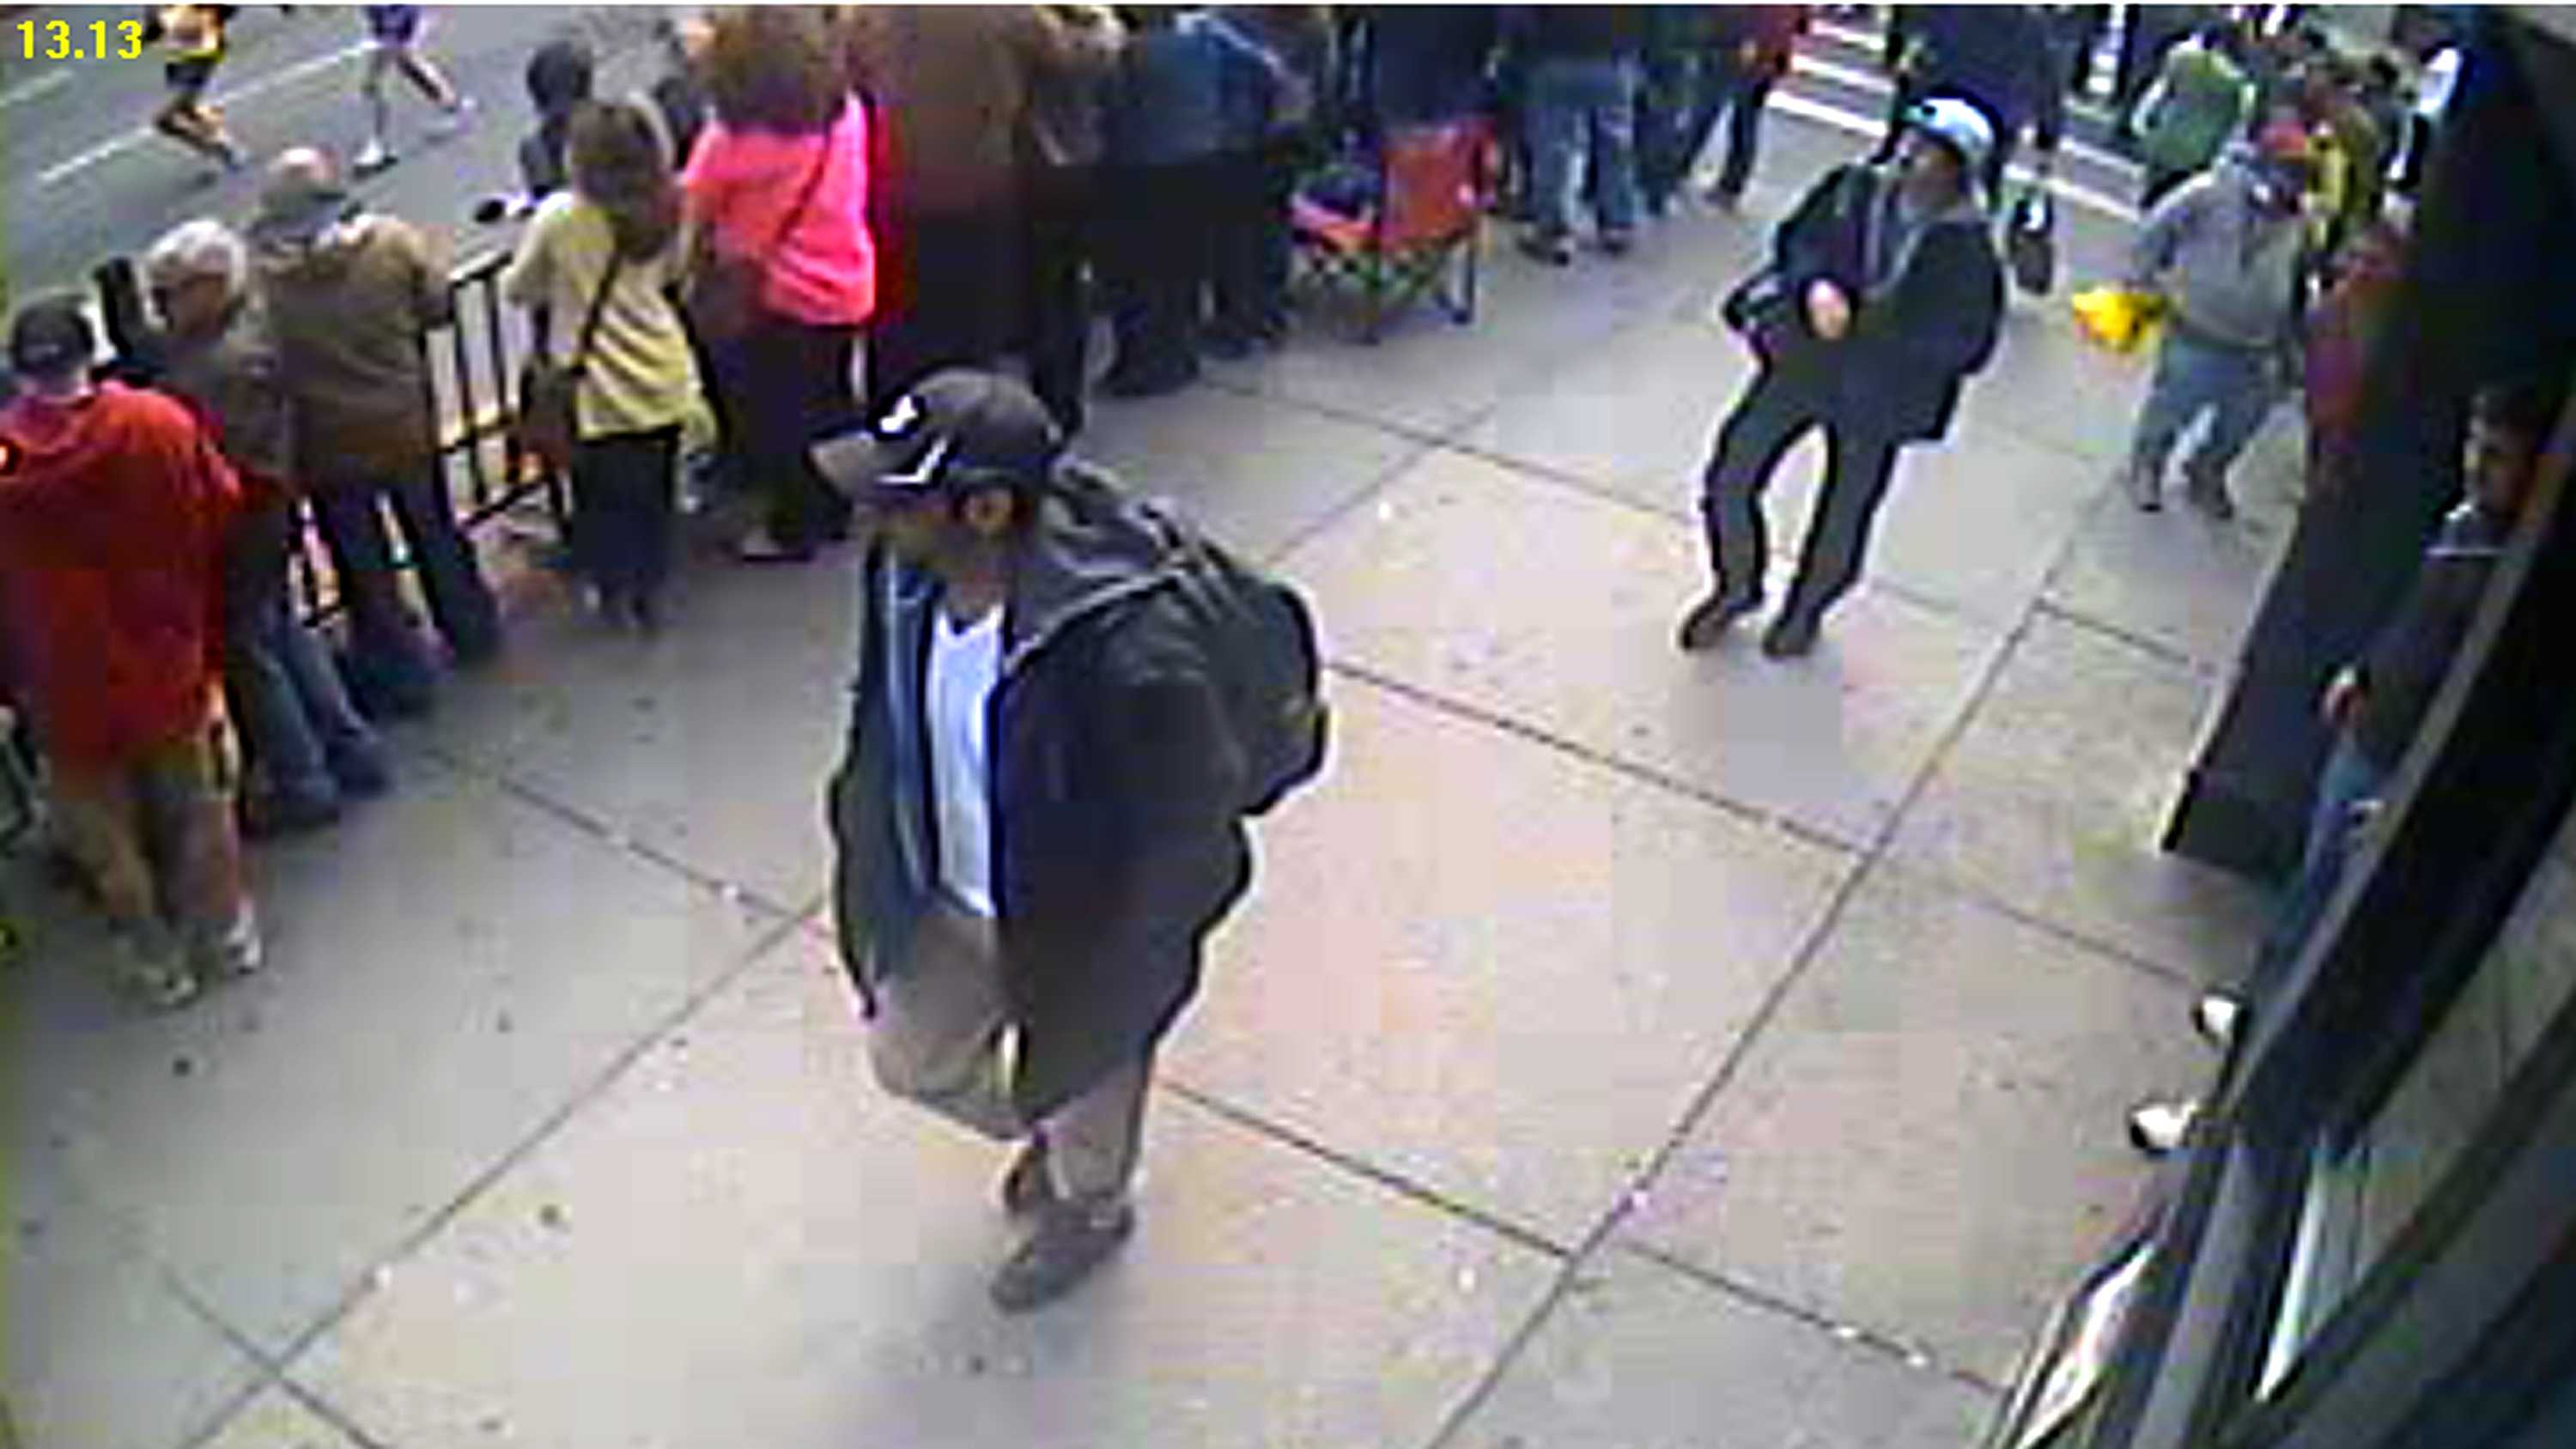 The FBI has released photos of two suspects in the Boston Marathon bombings and is asking for the public's help in identifying them. This is a picture of suspect #1.